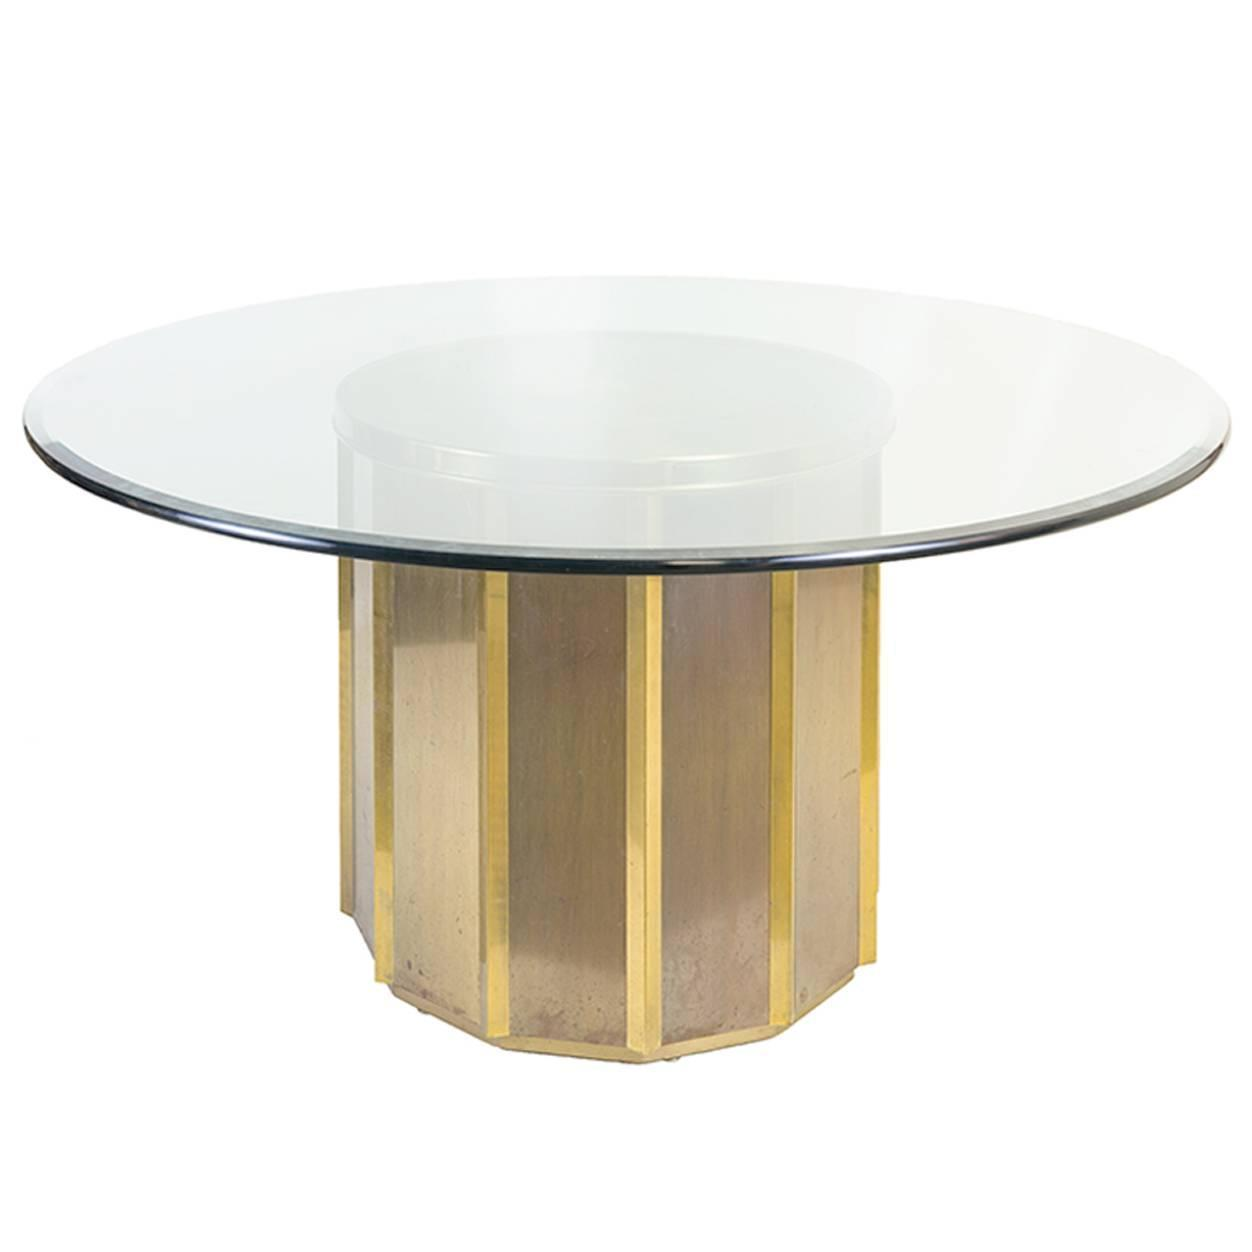 West elm round dining